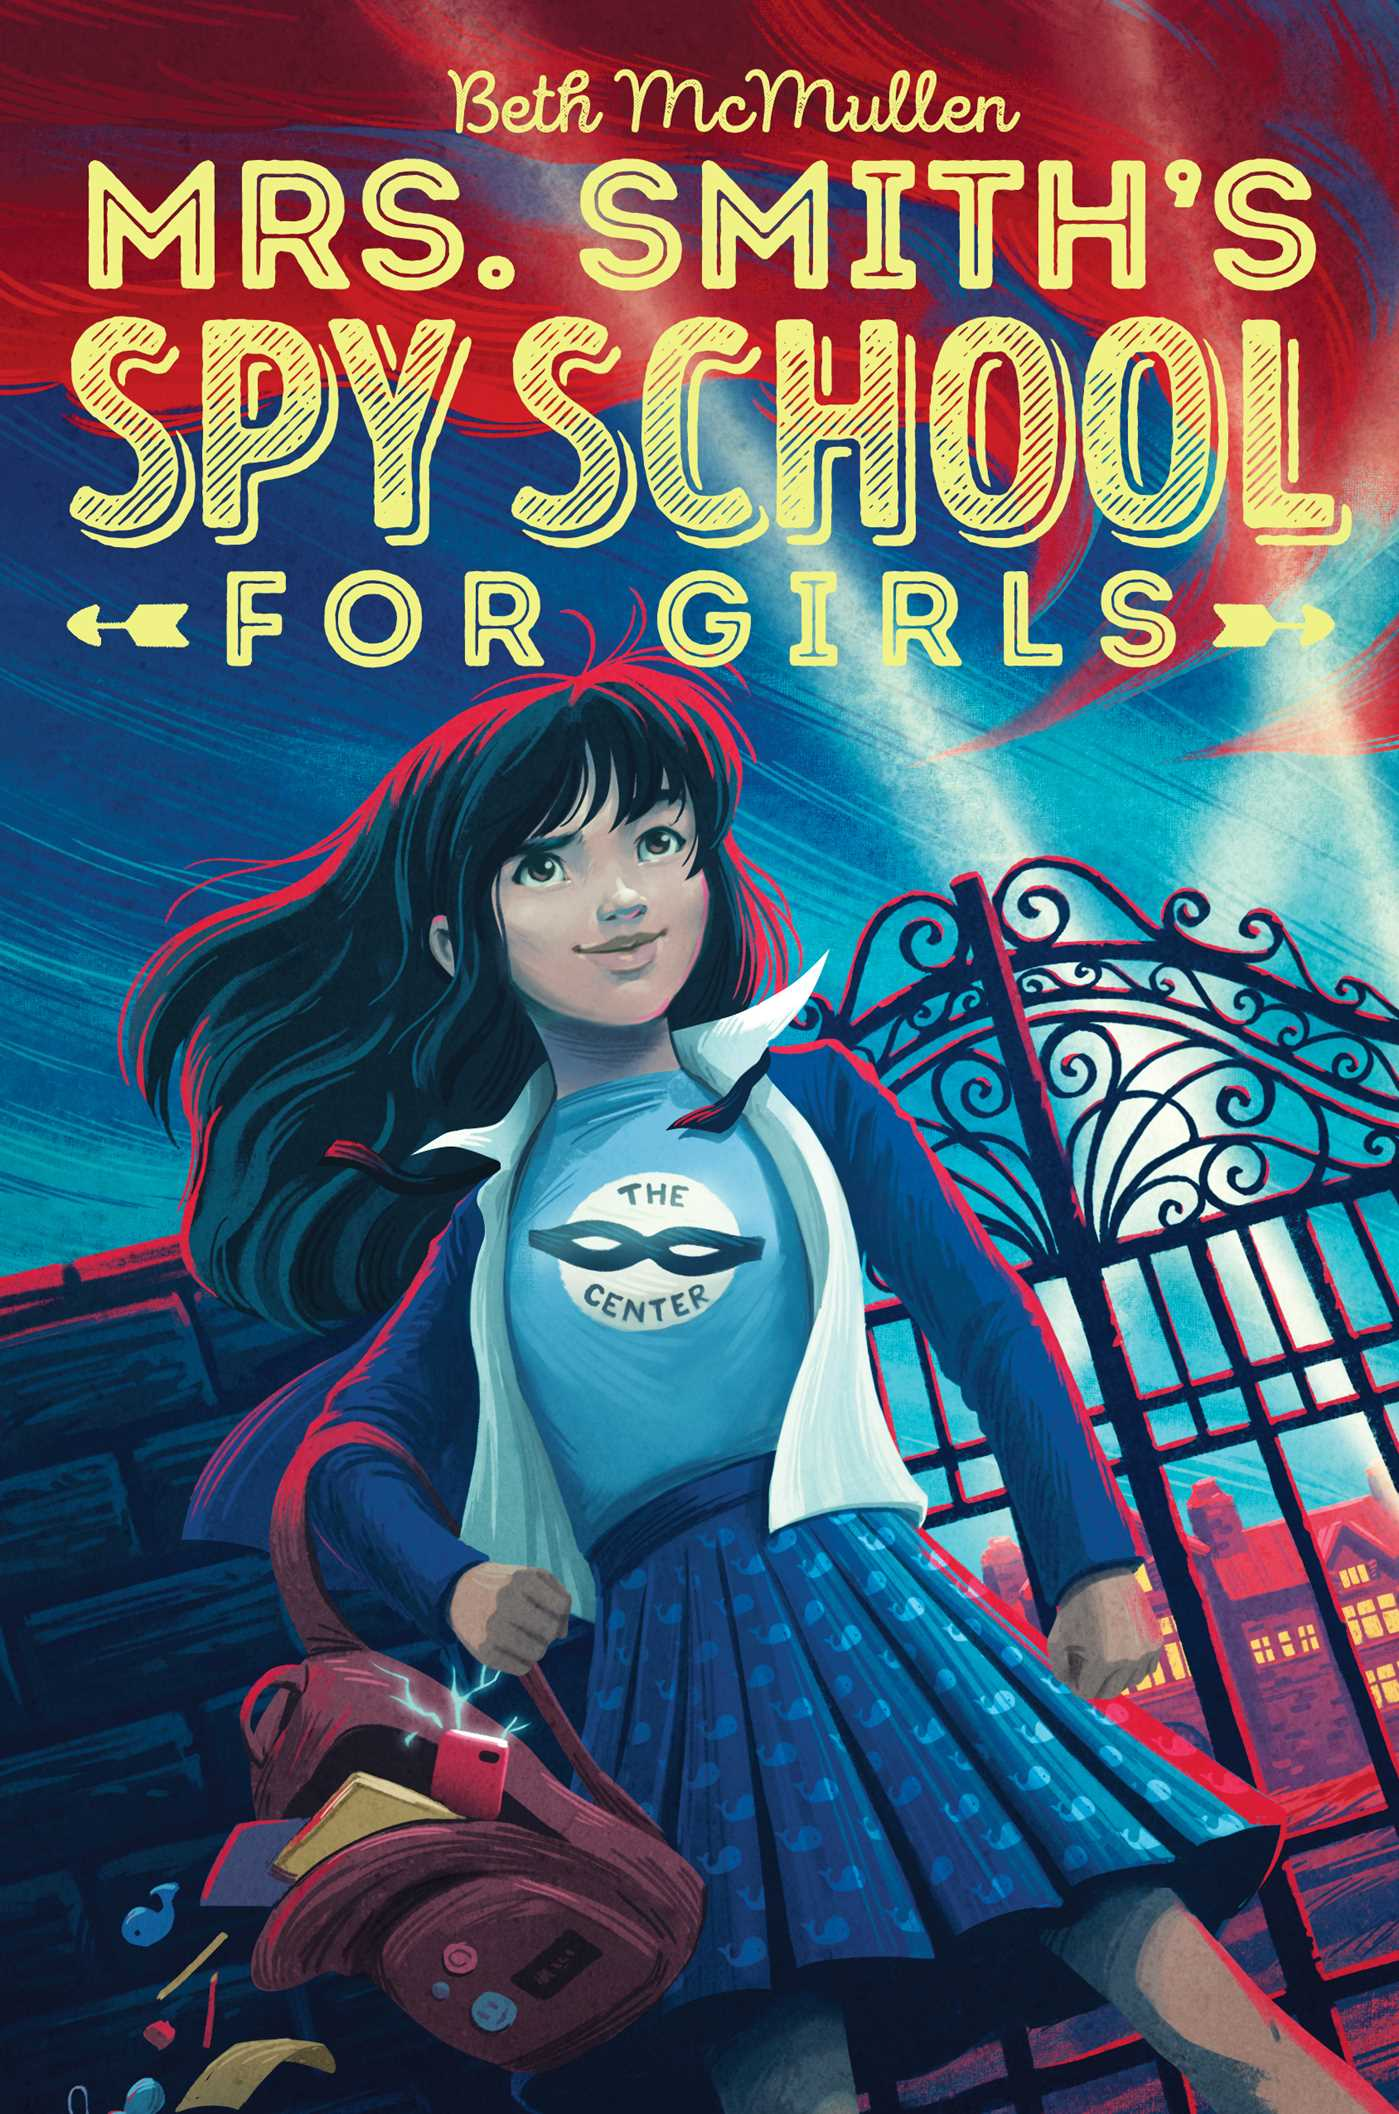 Mrs smiths spy school for girls 9781481490221 hr